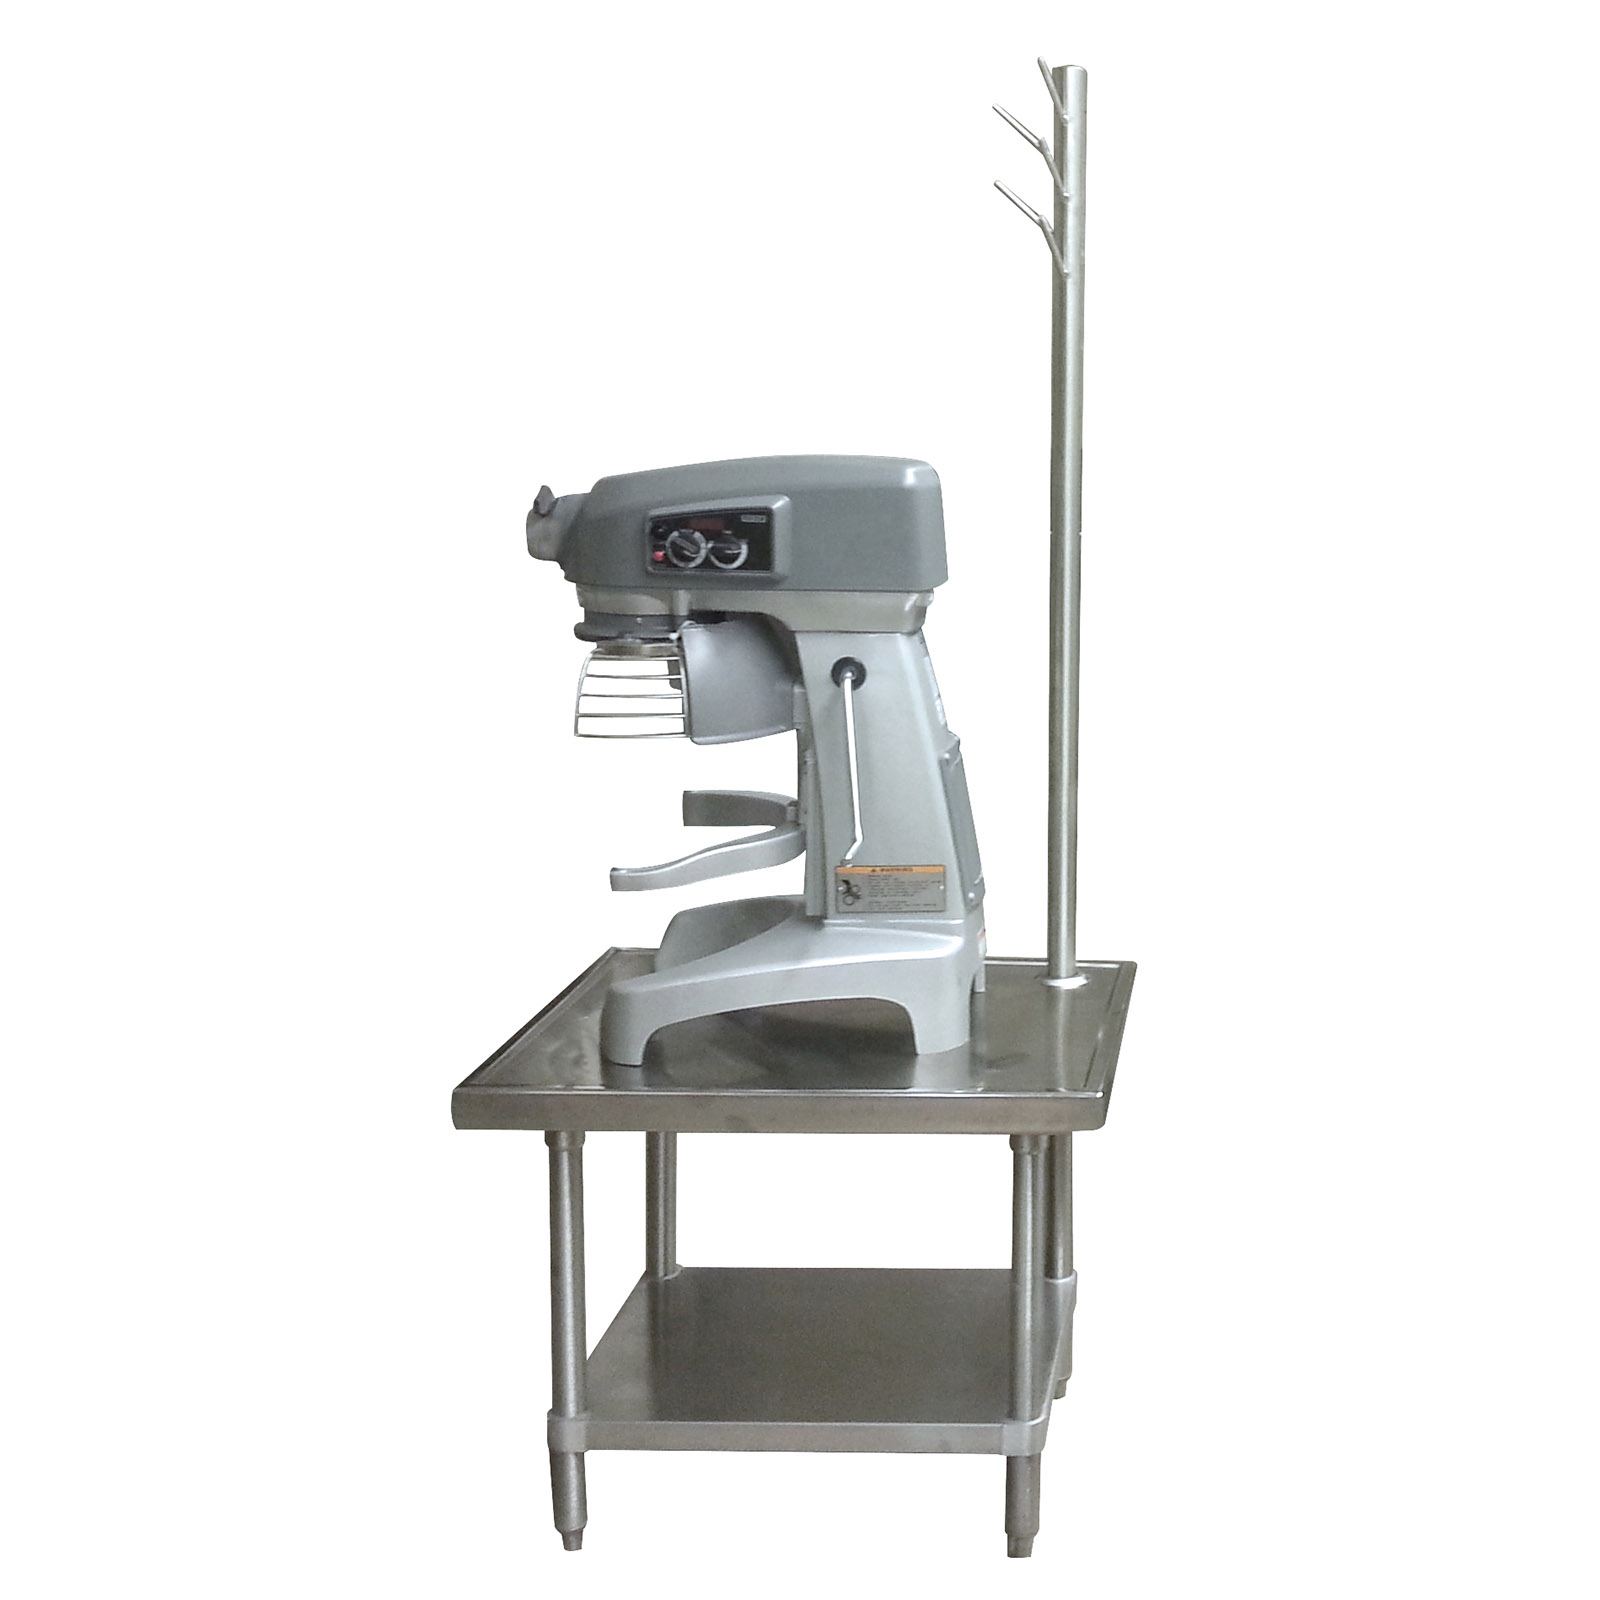 Advance Tabco MX-GL-242 equipment stand, for mixer / slicer